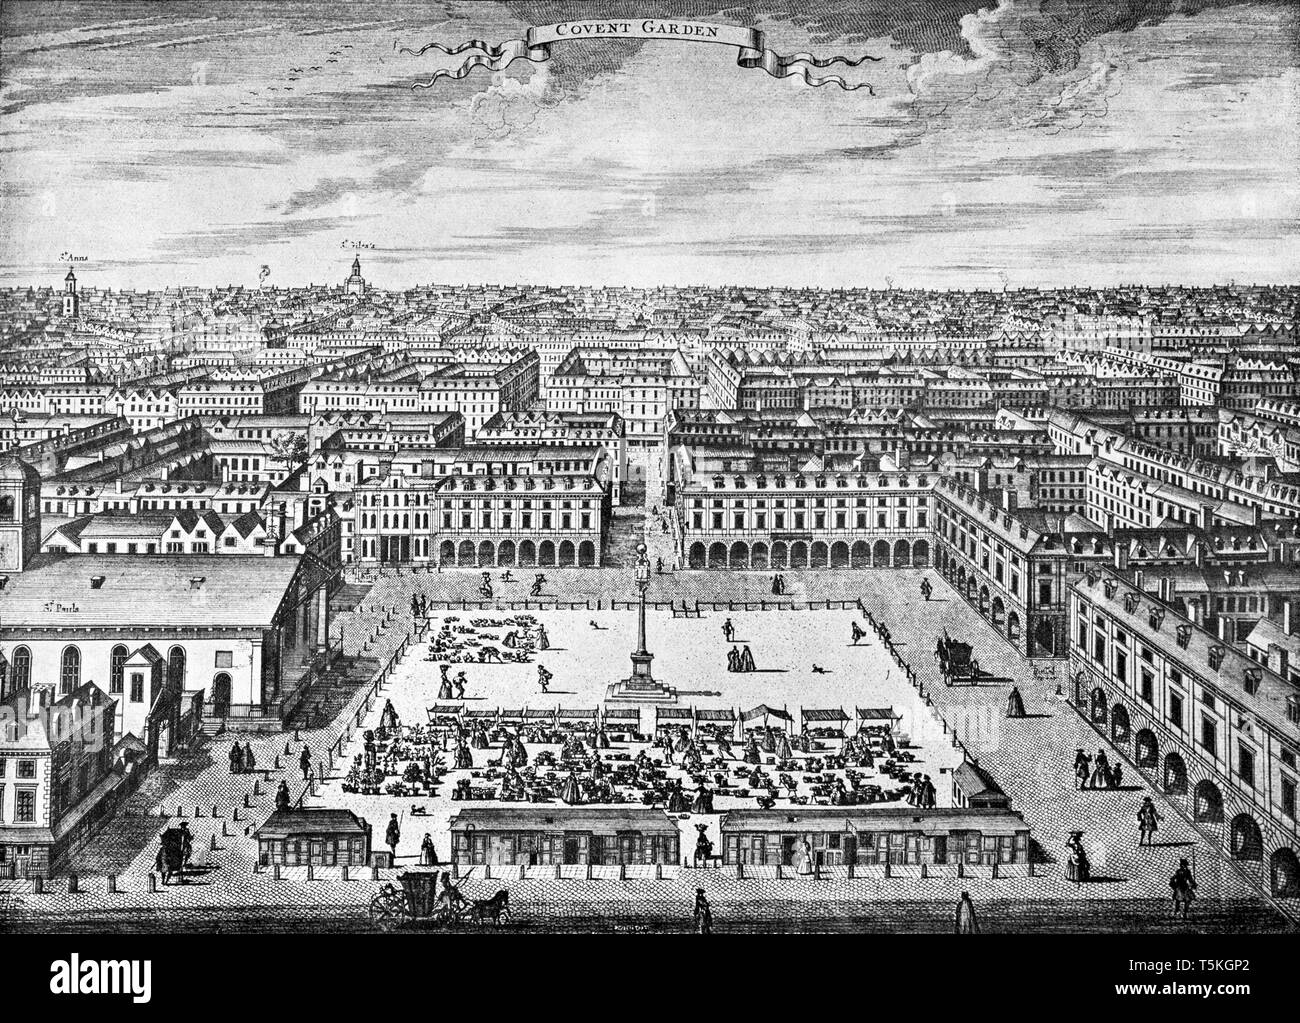 General view of Covent Garden looking north, circa 1720, from an engraving by Sutton Nicholls - Stock Image